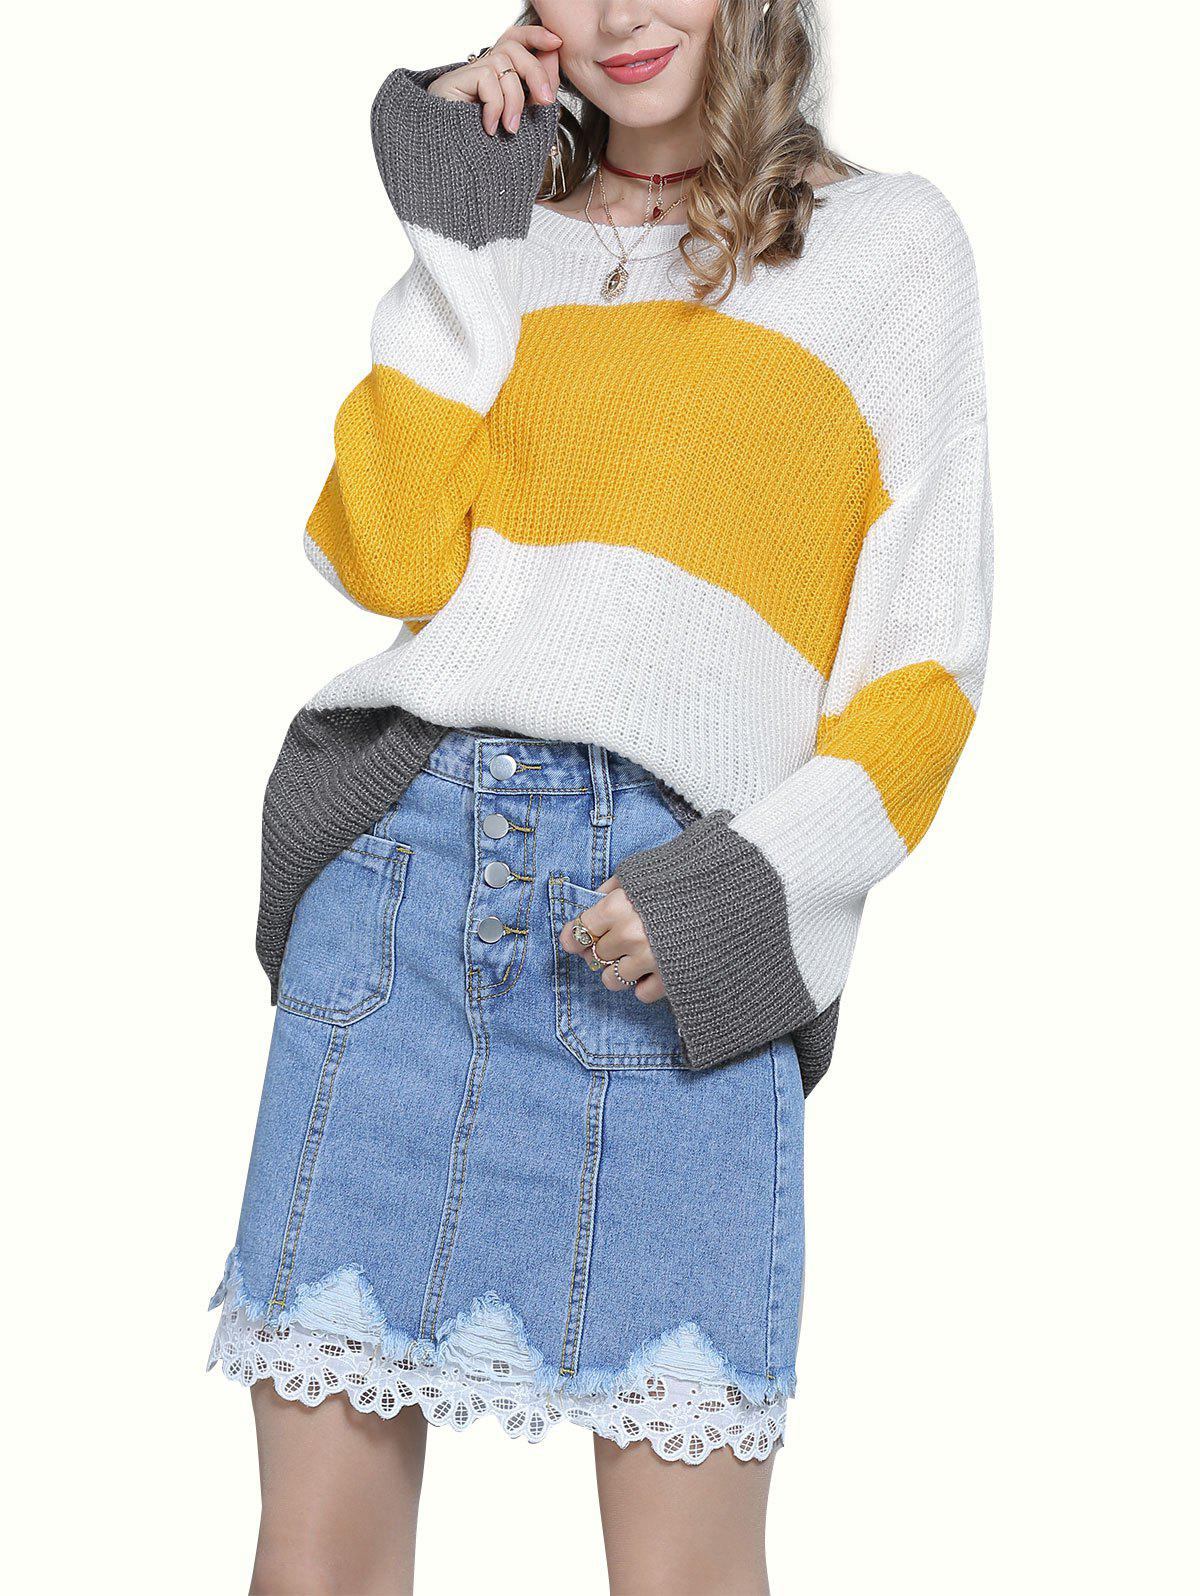 Contrast Colorblock Drop Shoulder Sweater - multicolor XL